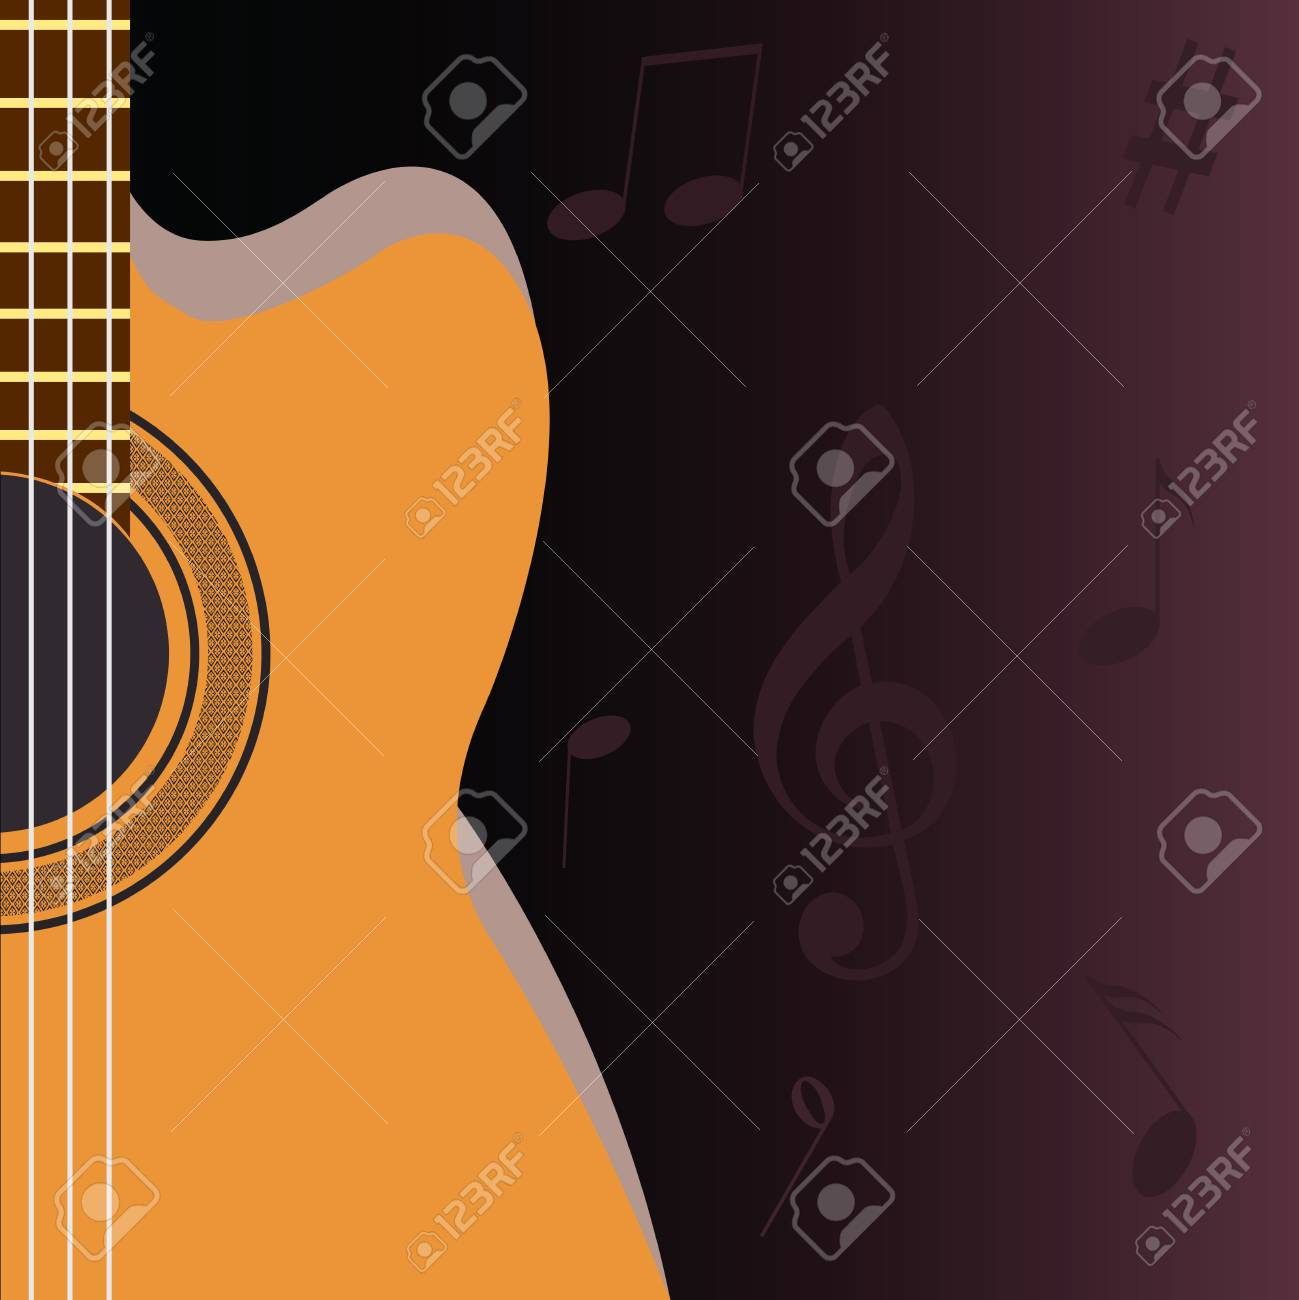 Guitar and musical notes on a dark background Stock Vector - 8334834